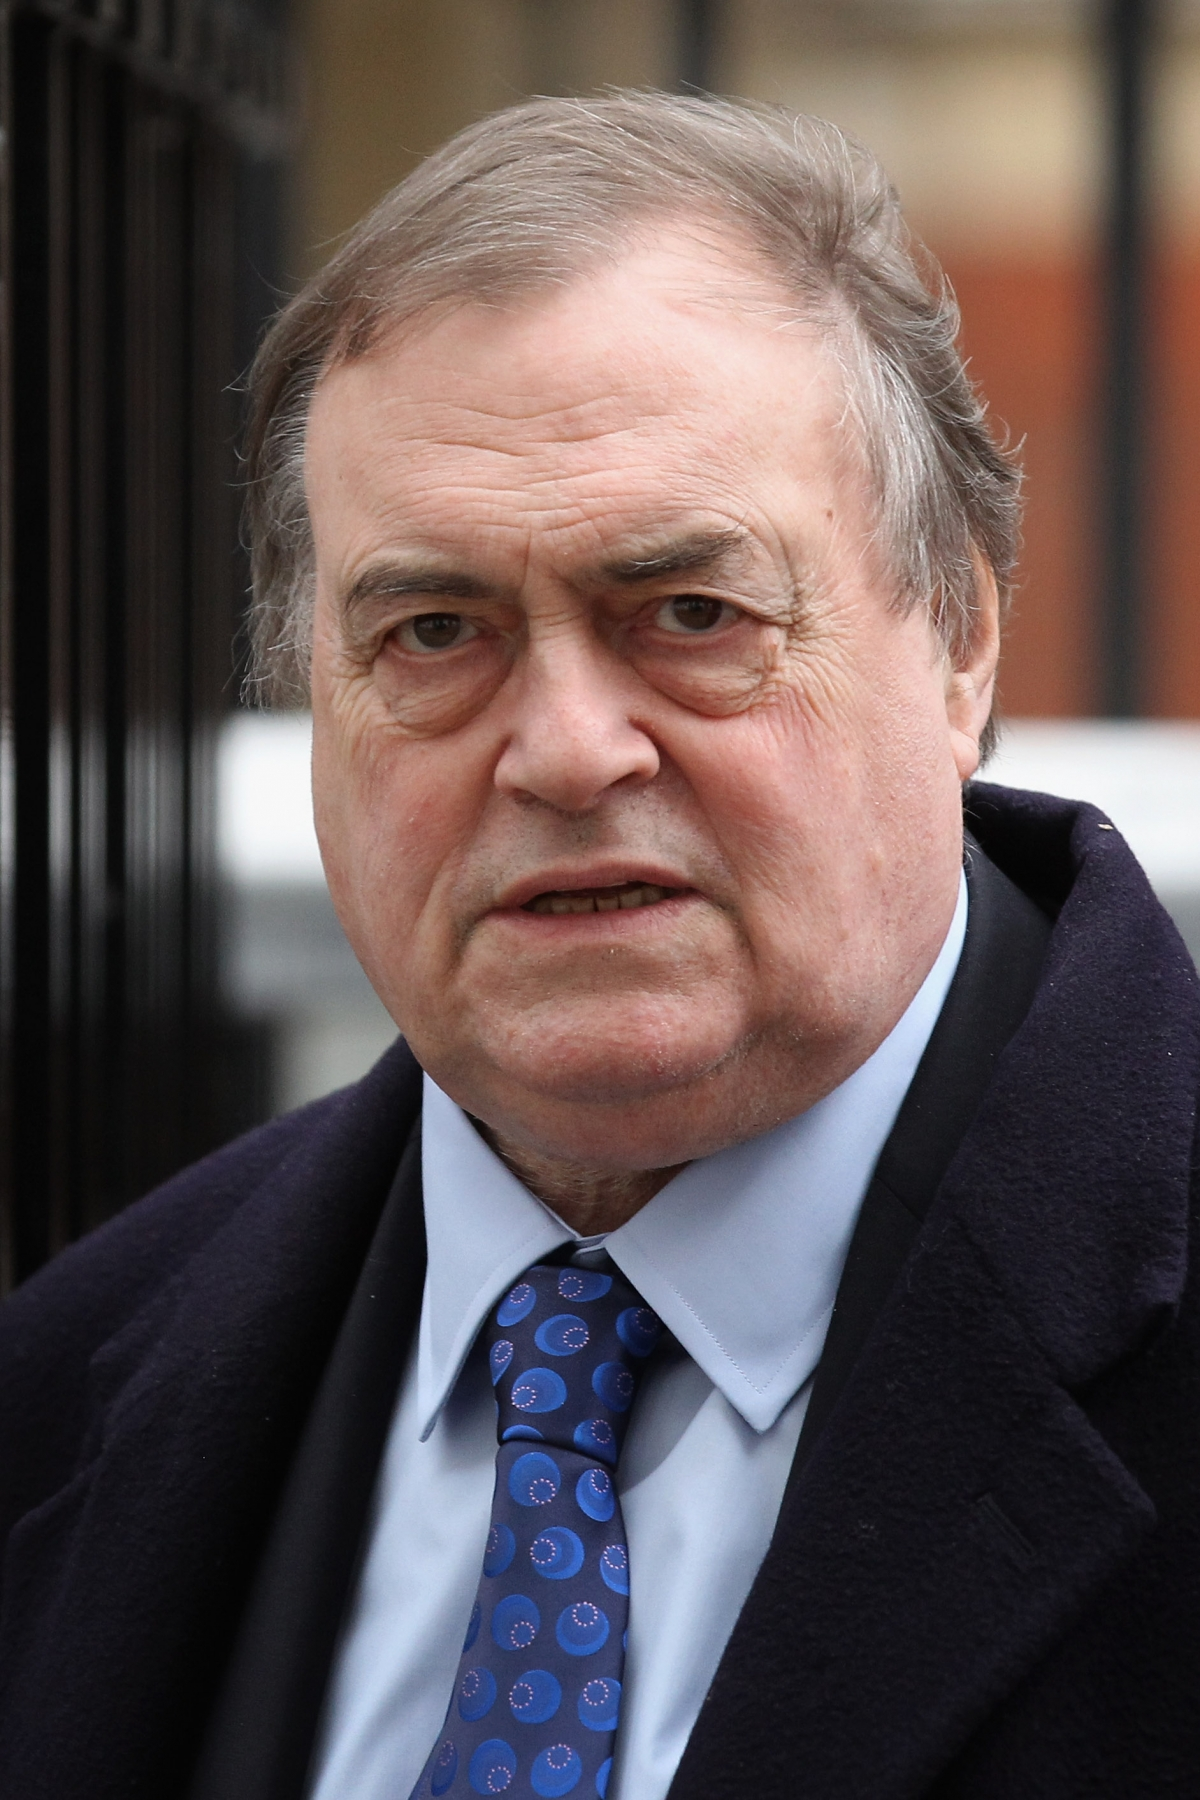 John Prescott has branded Israel's Gaza offensive a war crime. (Getty)